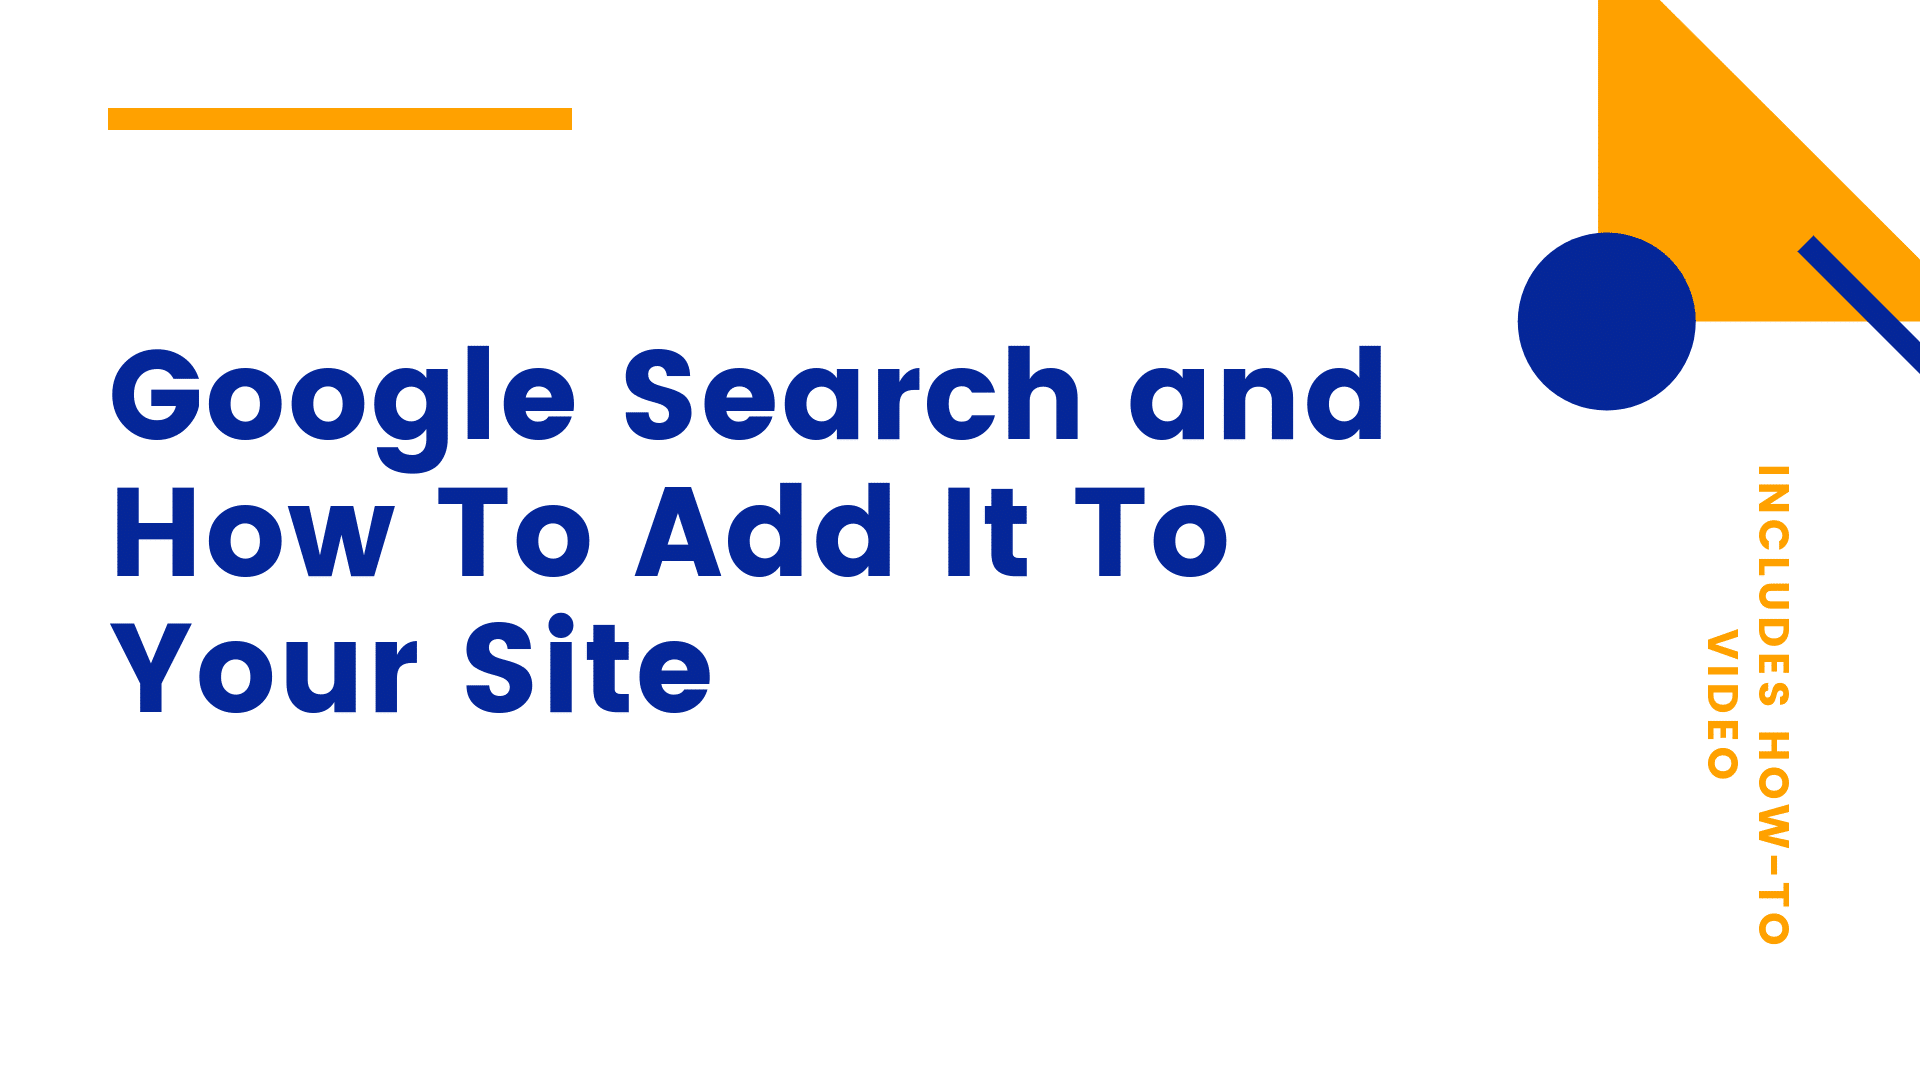 Google Search and How To Add It To Your Site